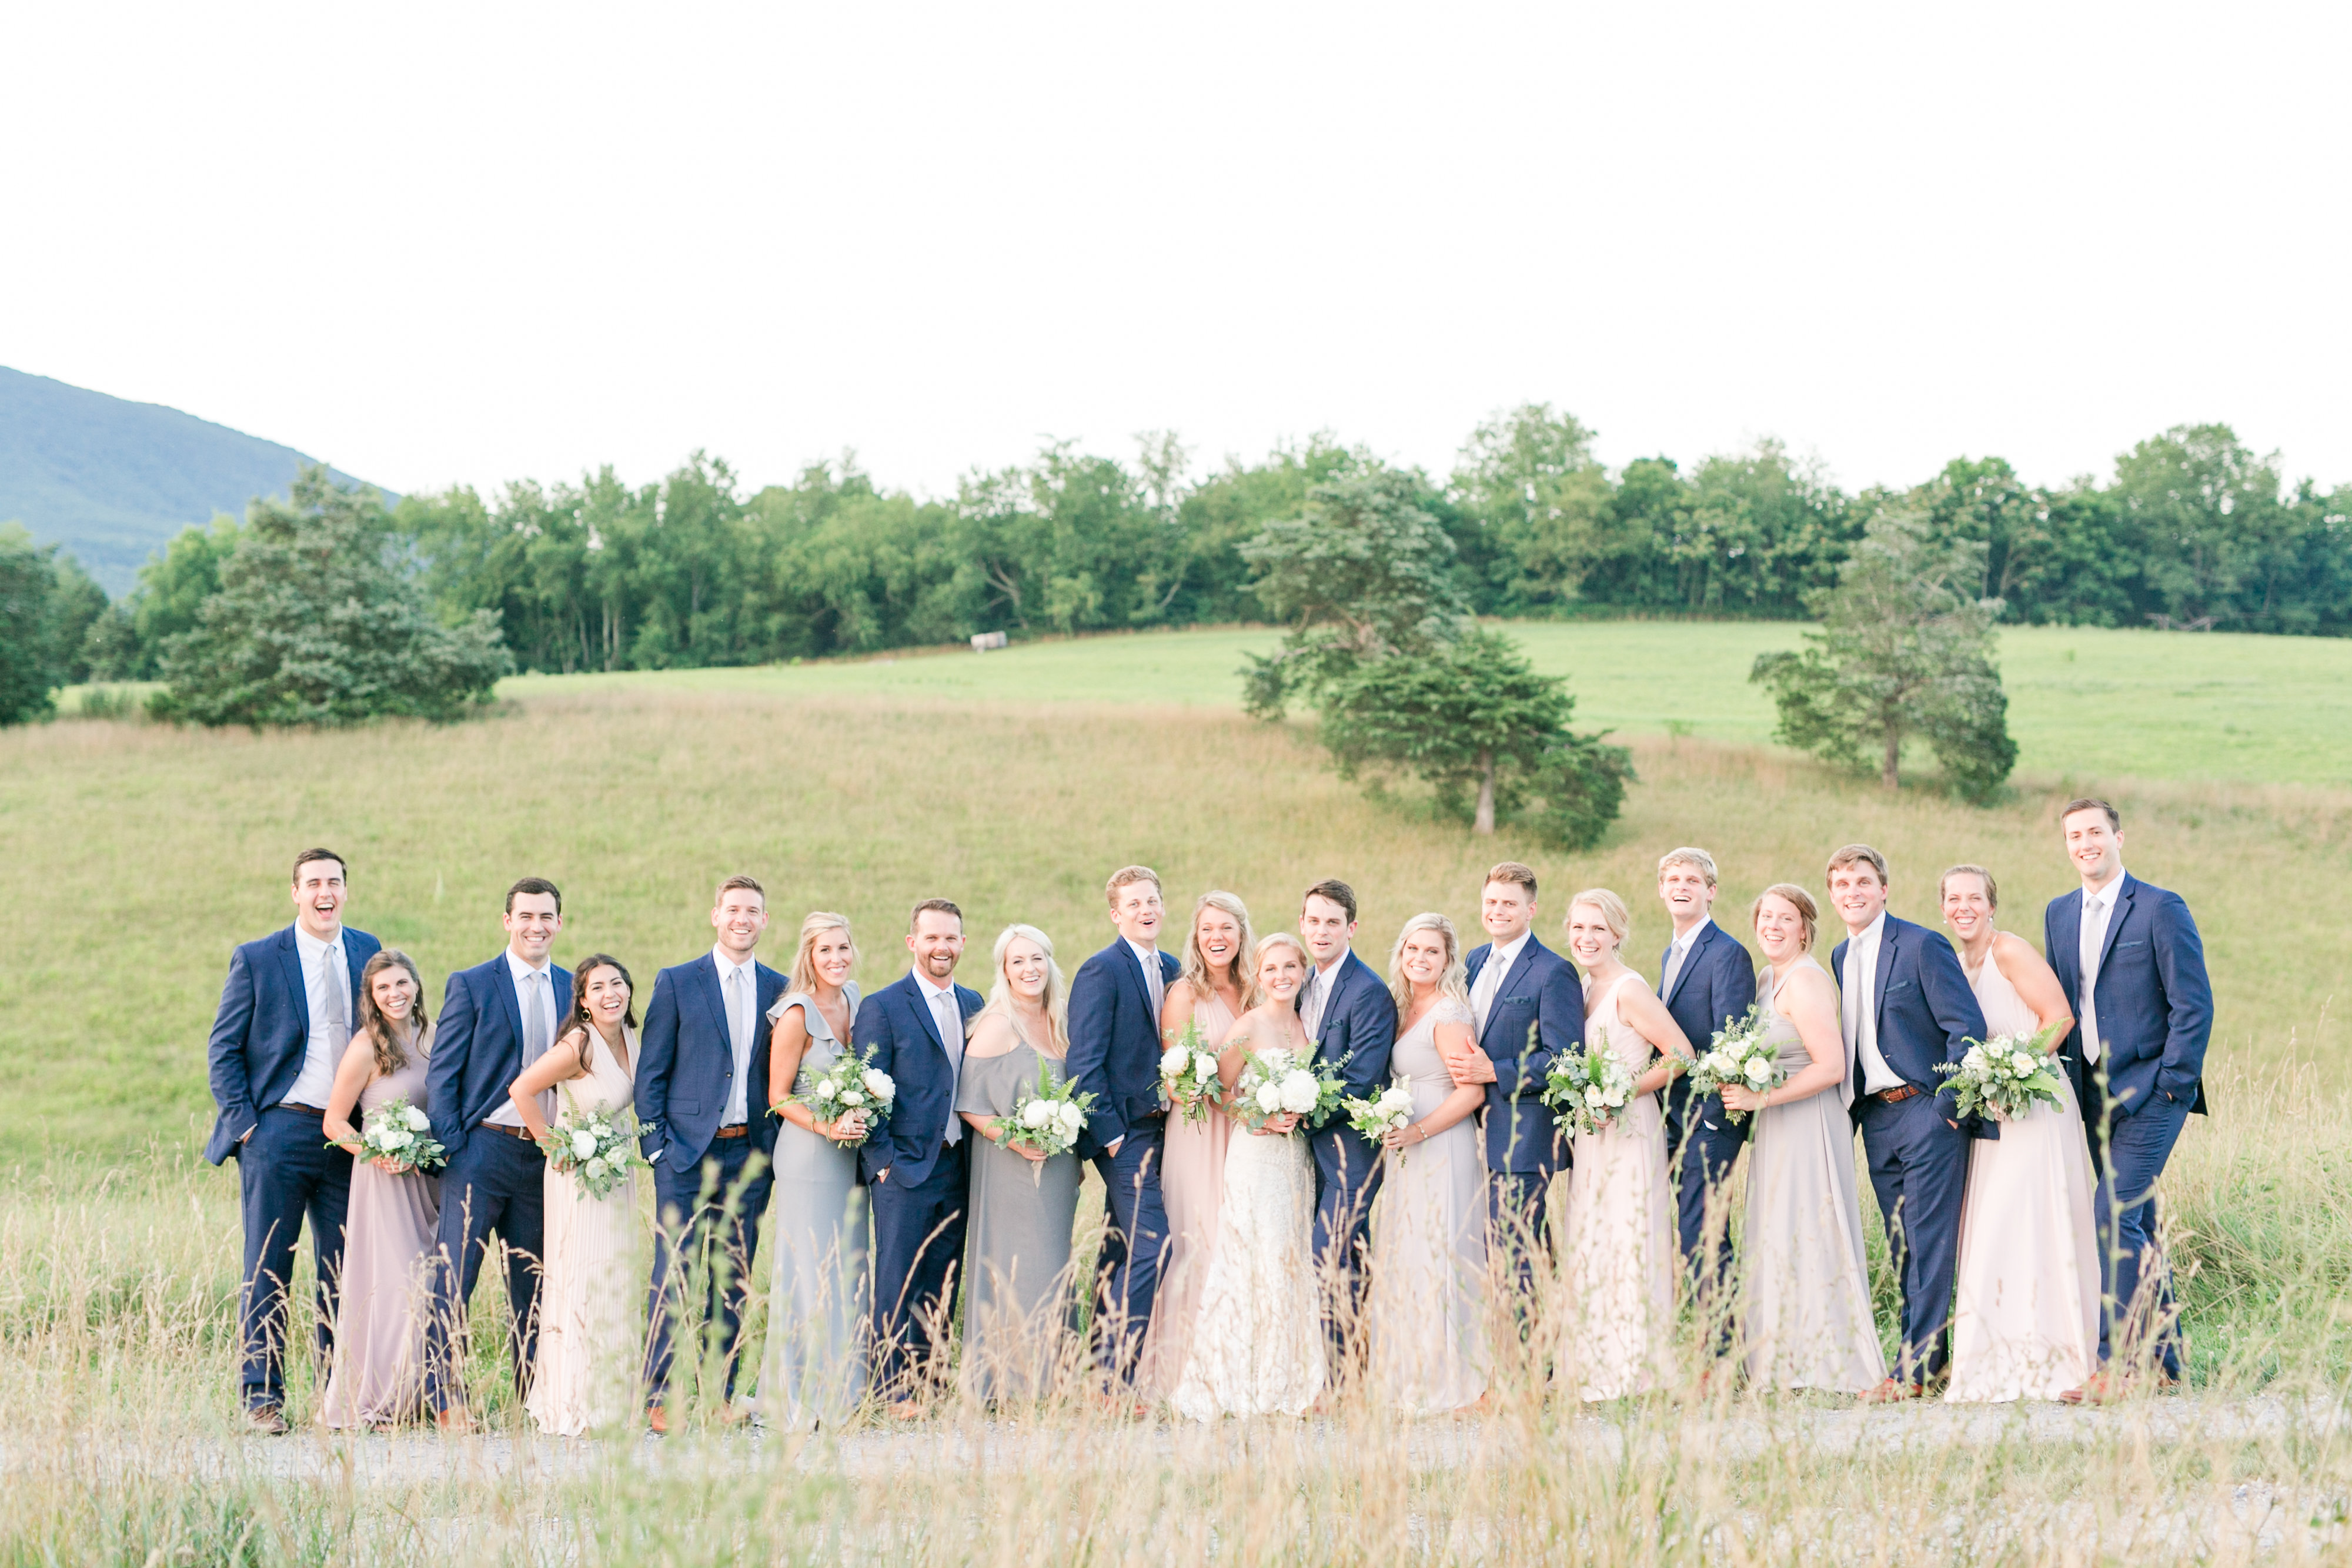 John and Kaylee's beautiful Big Spring Farm Wedding // Photographer: Katelyn James Photography // Flowers: Carbon & Salt // Venue: Big Spring Farm in Lexington, Va // (Katelyn James Photography)